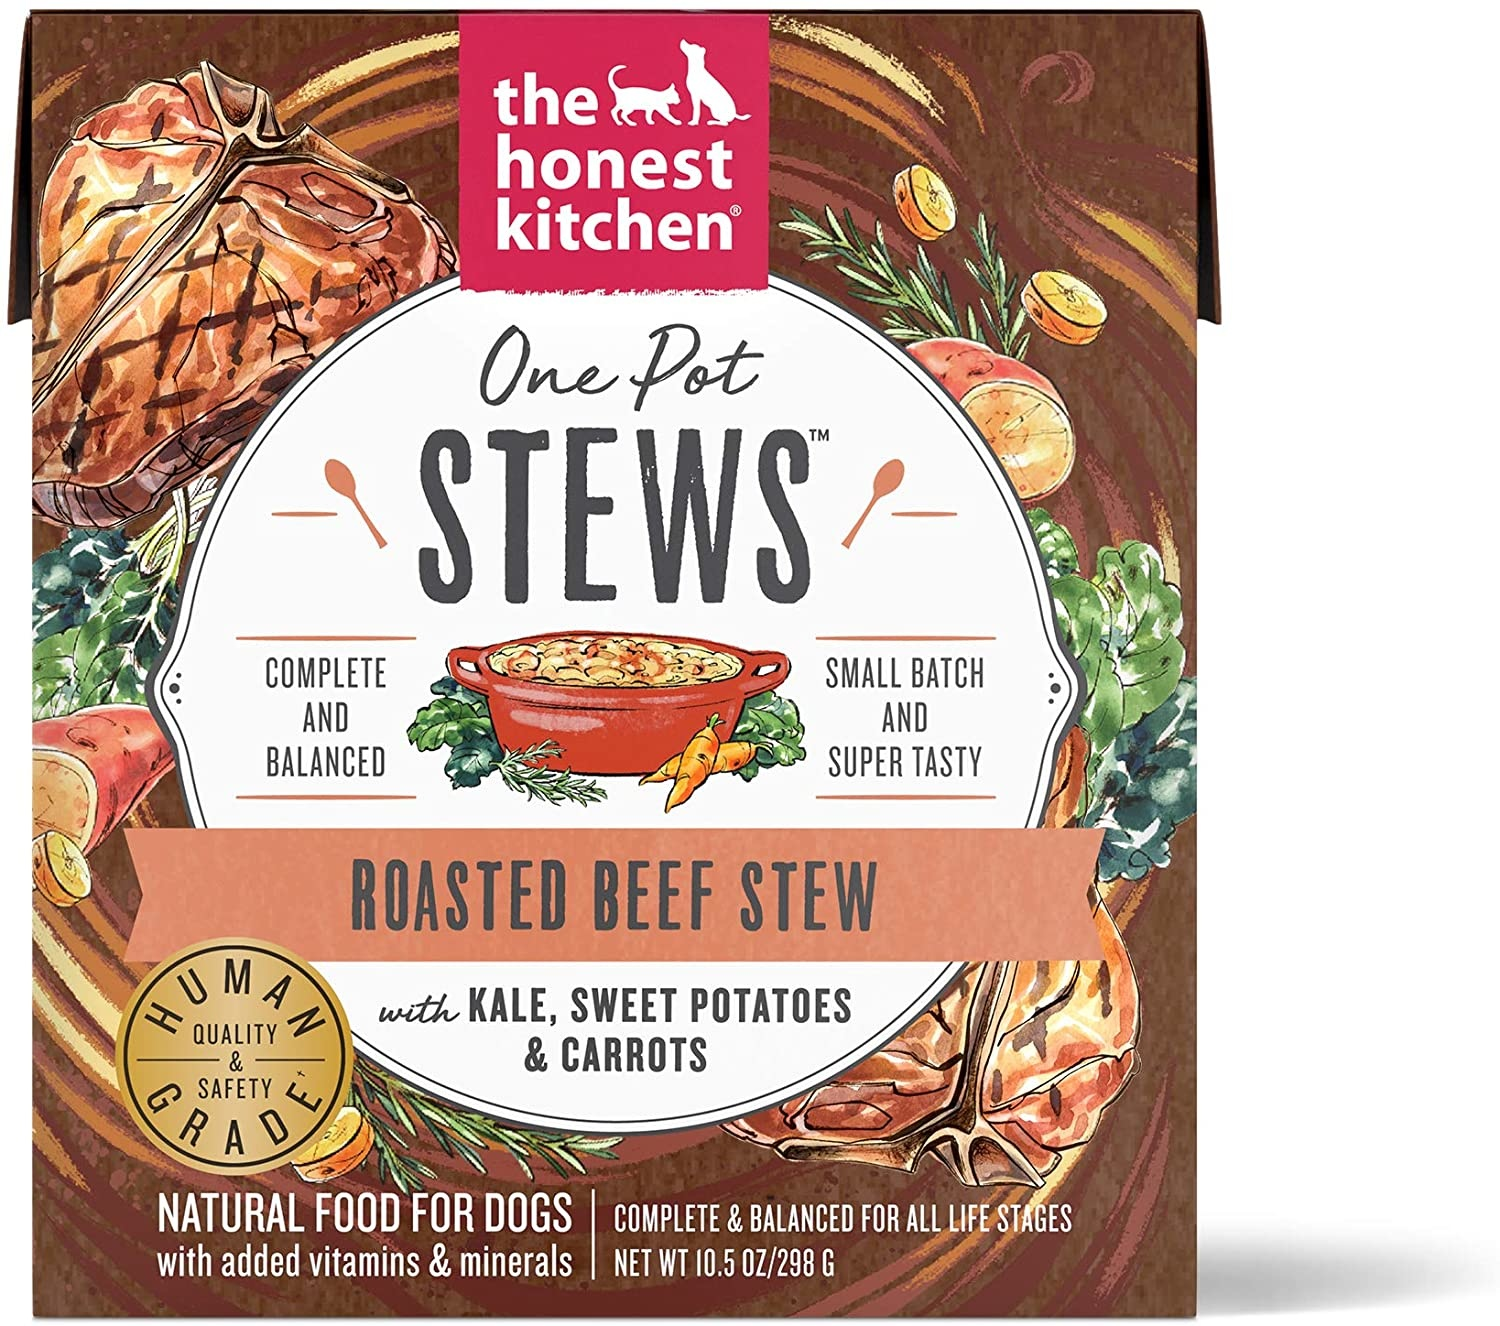 The Honest Kitchen The Honest Kitchen One Pot Stew Roasted Beef with Kale, Sweet Potatoes & Carrots Wet Dog Food 10.5oz